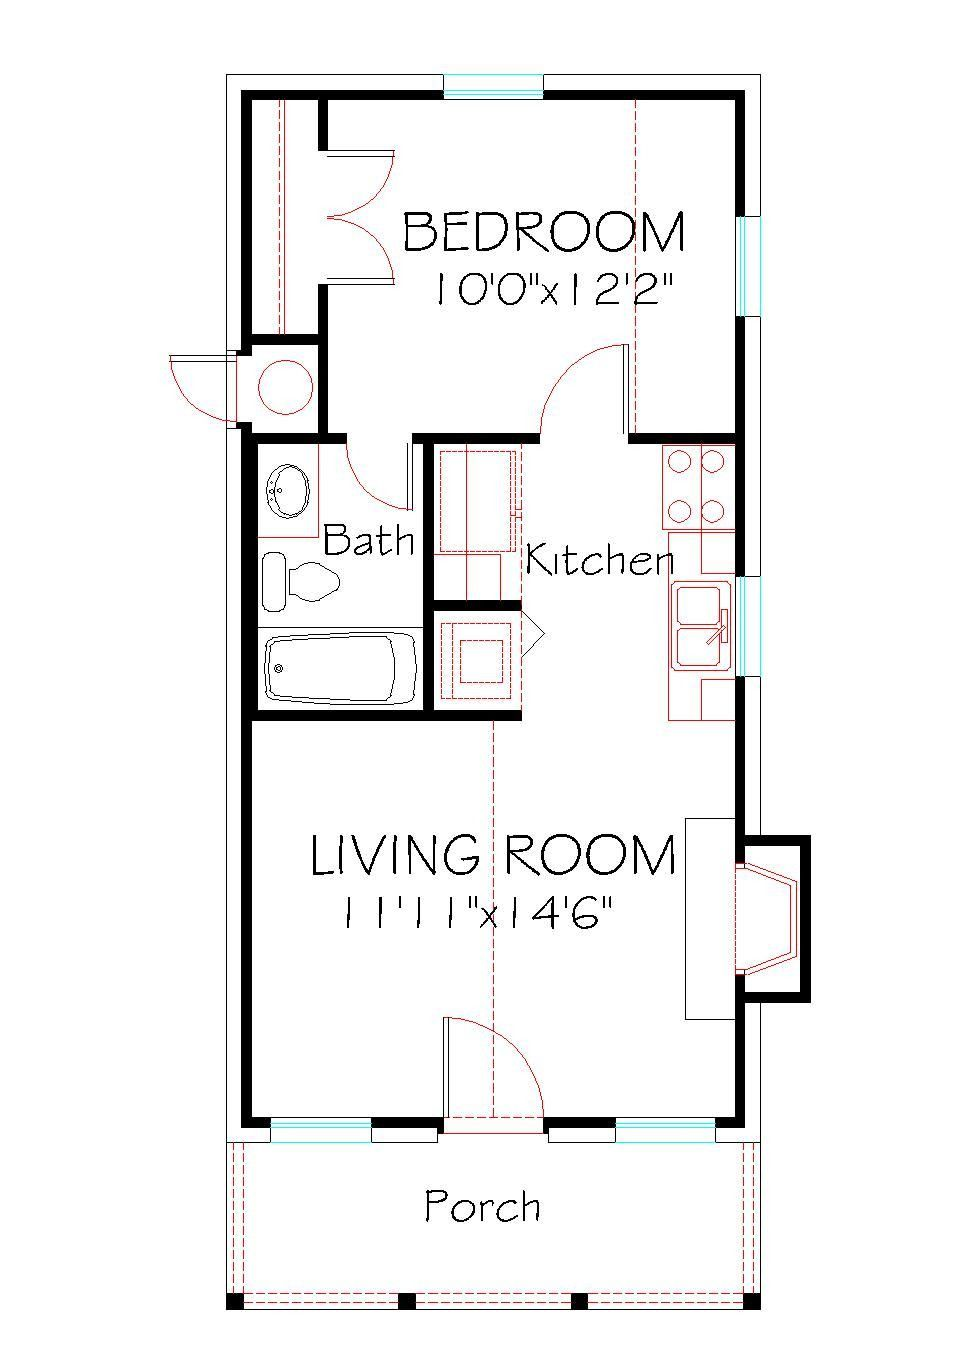 Awesome One Level Tiny House Ideas Floor Plans 520 149 Flr Plan Model In 2020 Tiny House Layout Small House Floor Plans Small House Layout